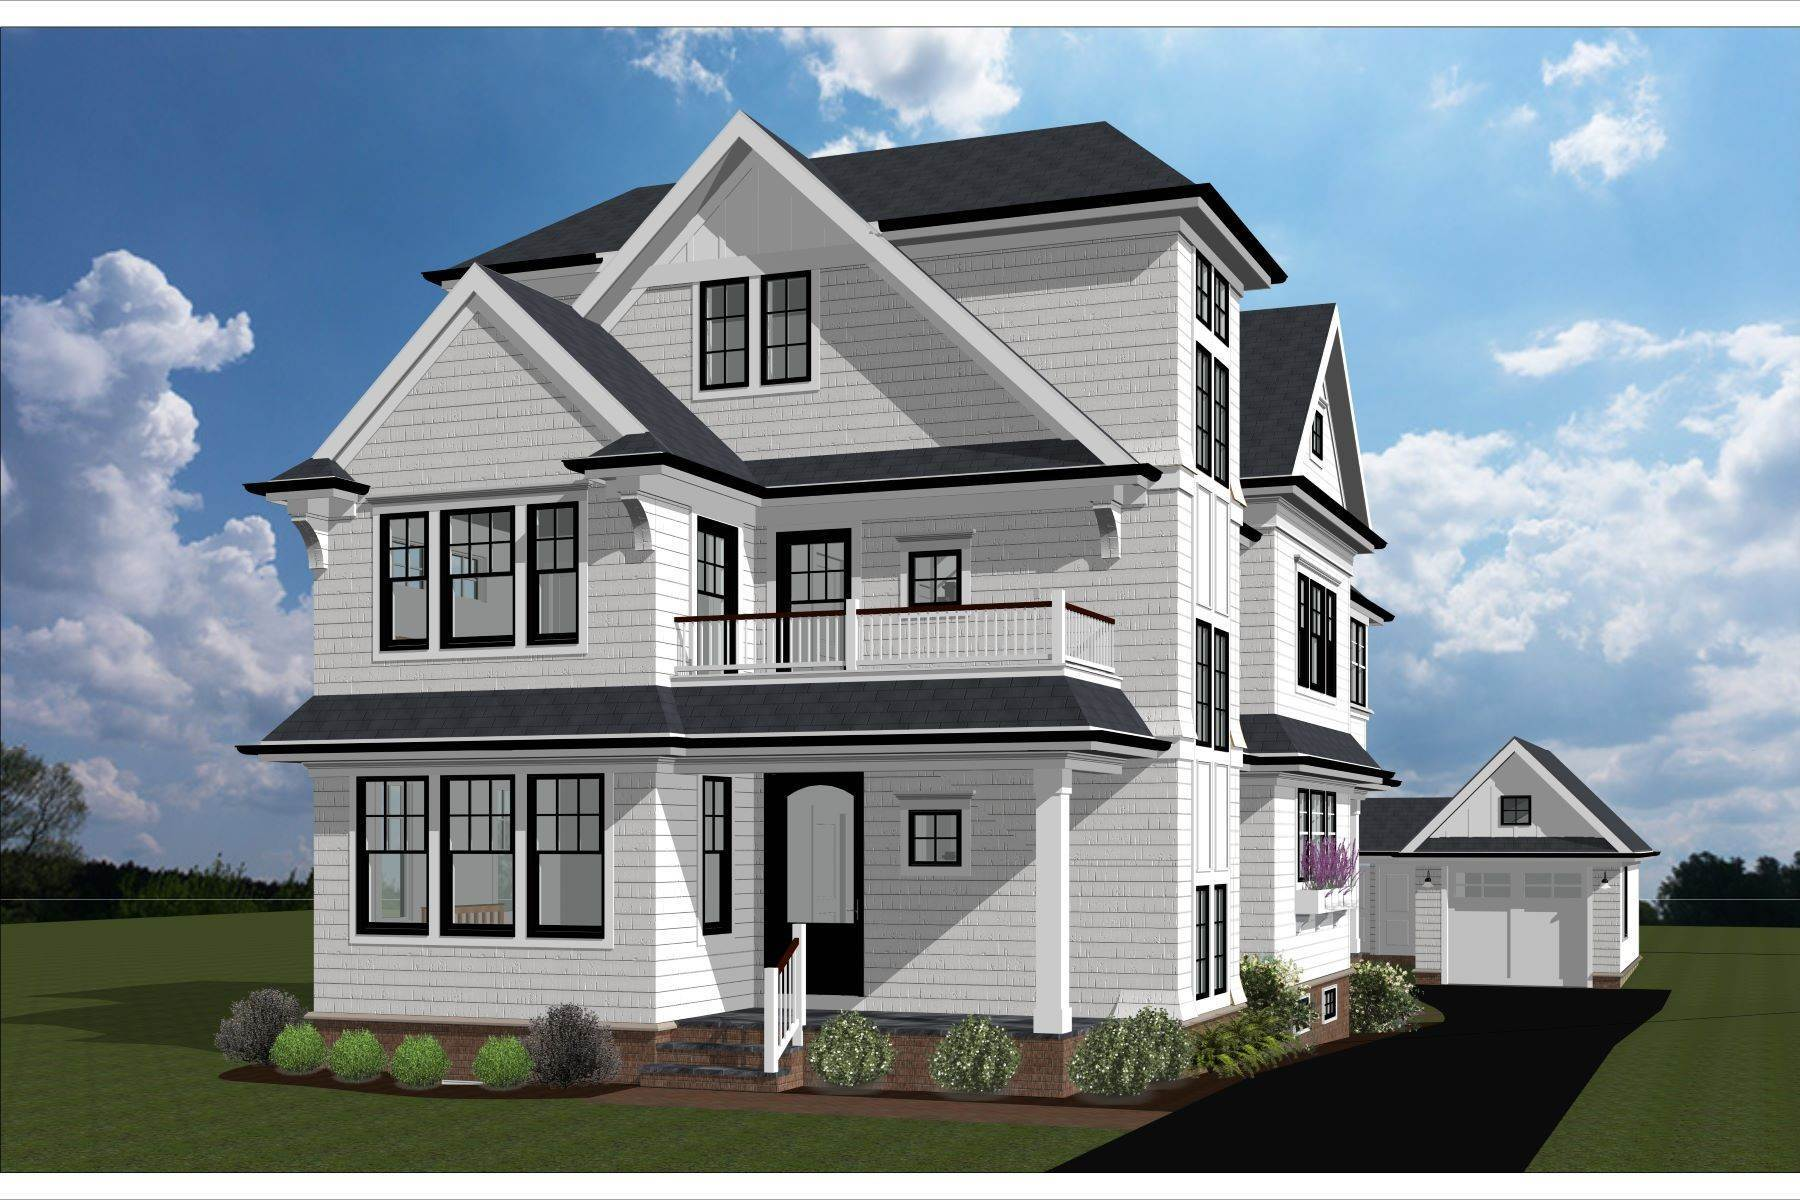 Single Family Homes for Sale at New Construction in Sea Girt 115 Beacon Boulevard Sea Girt, New Jersey 08750 United States